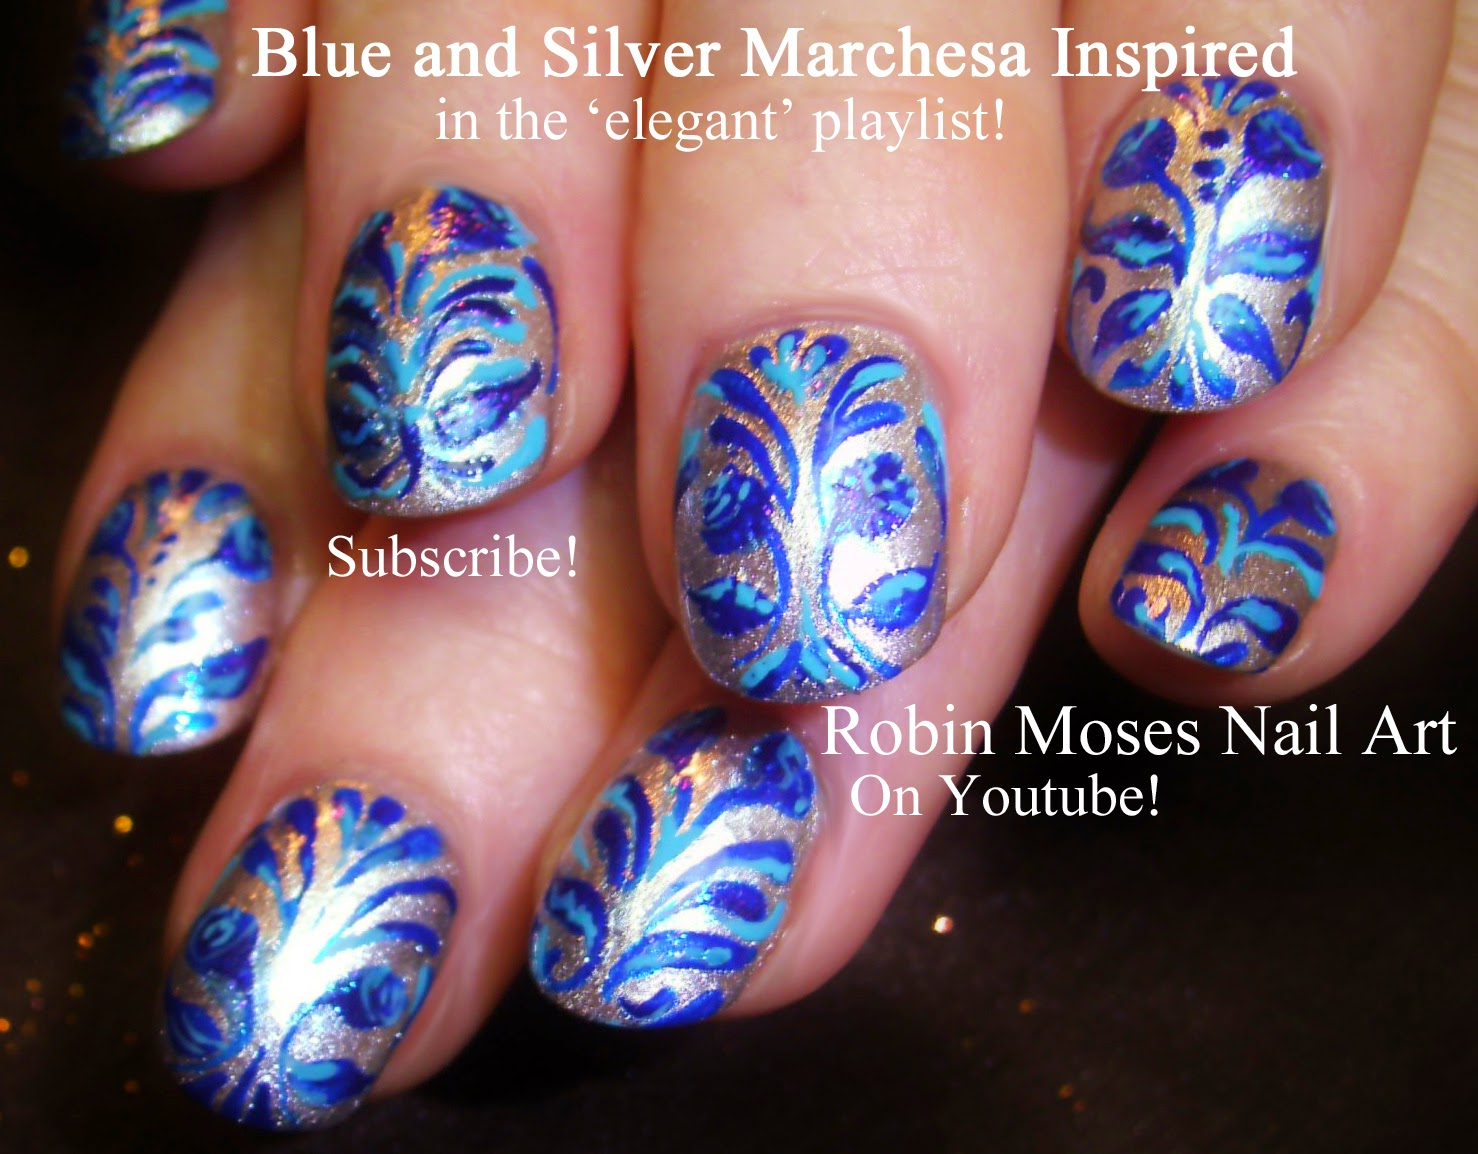 Robin moses nail art damask nails damask nail art royal blue damask nails damask nail art royal blue nails marchesa nail art marchesa print elegant nail art nails damask filigree nailart blue clip art prinsesfo Images